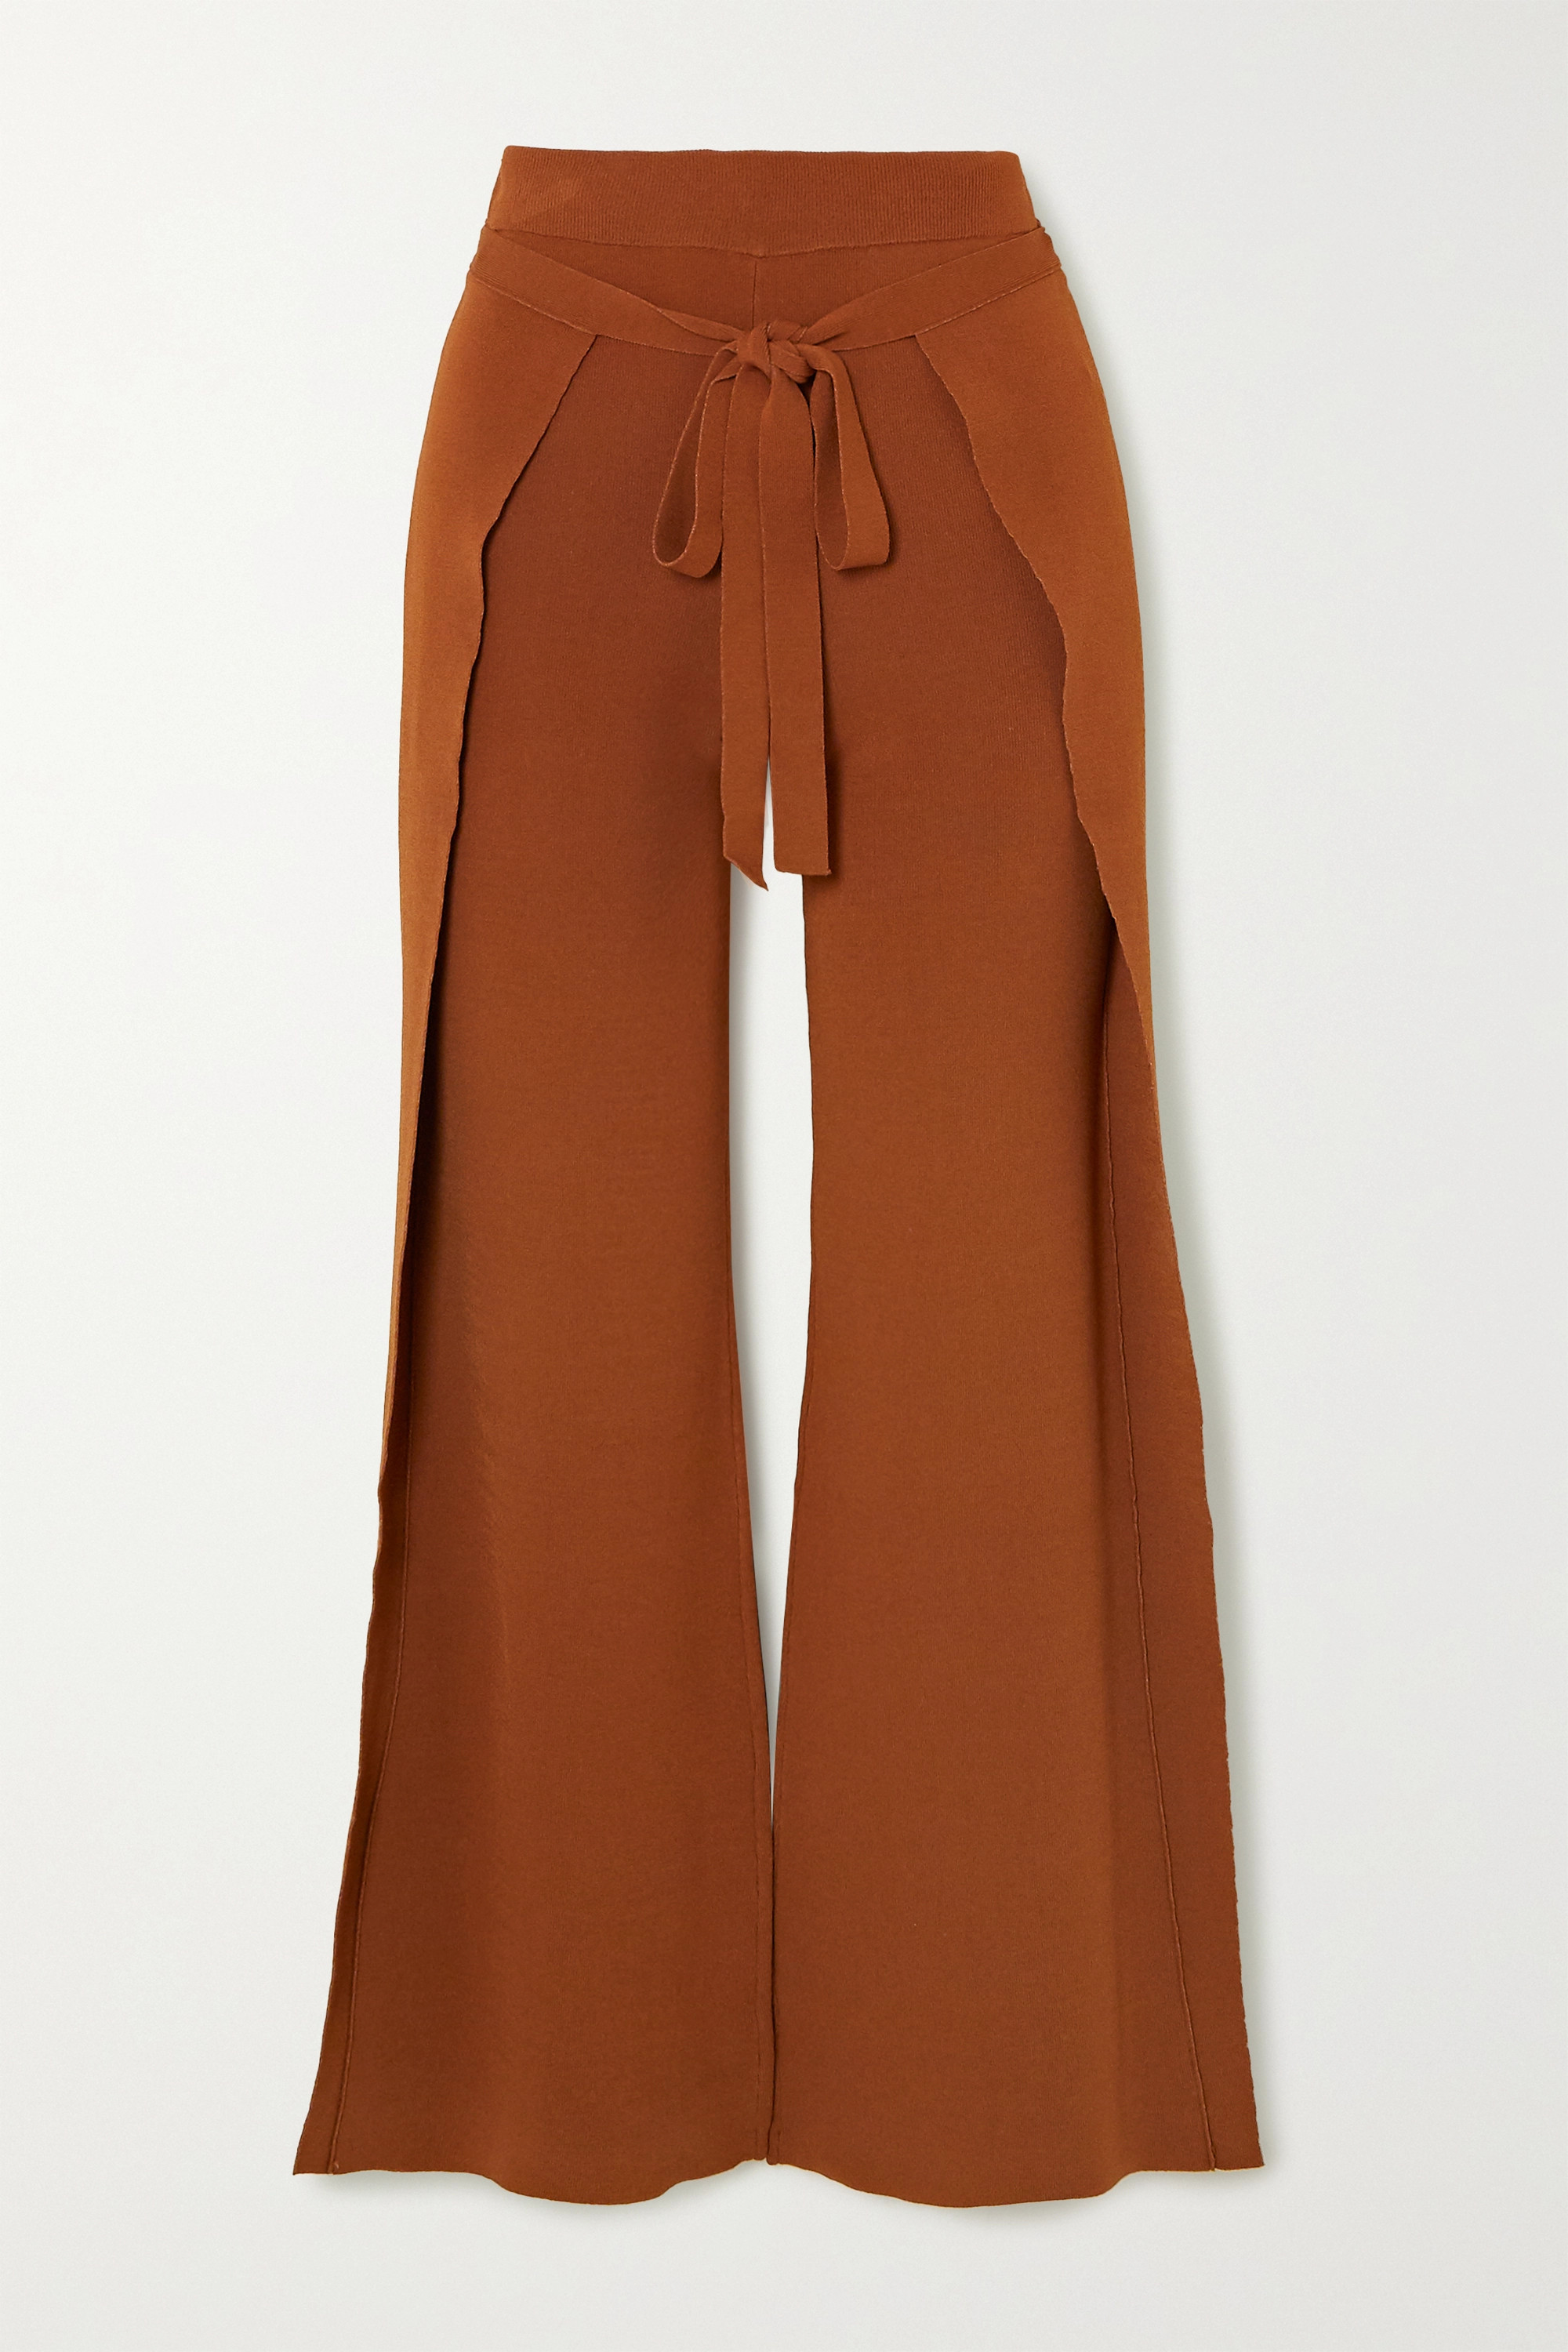 Cult Gaia Abigail tie-front layered knitted straight-leg pants